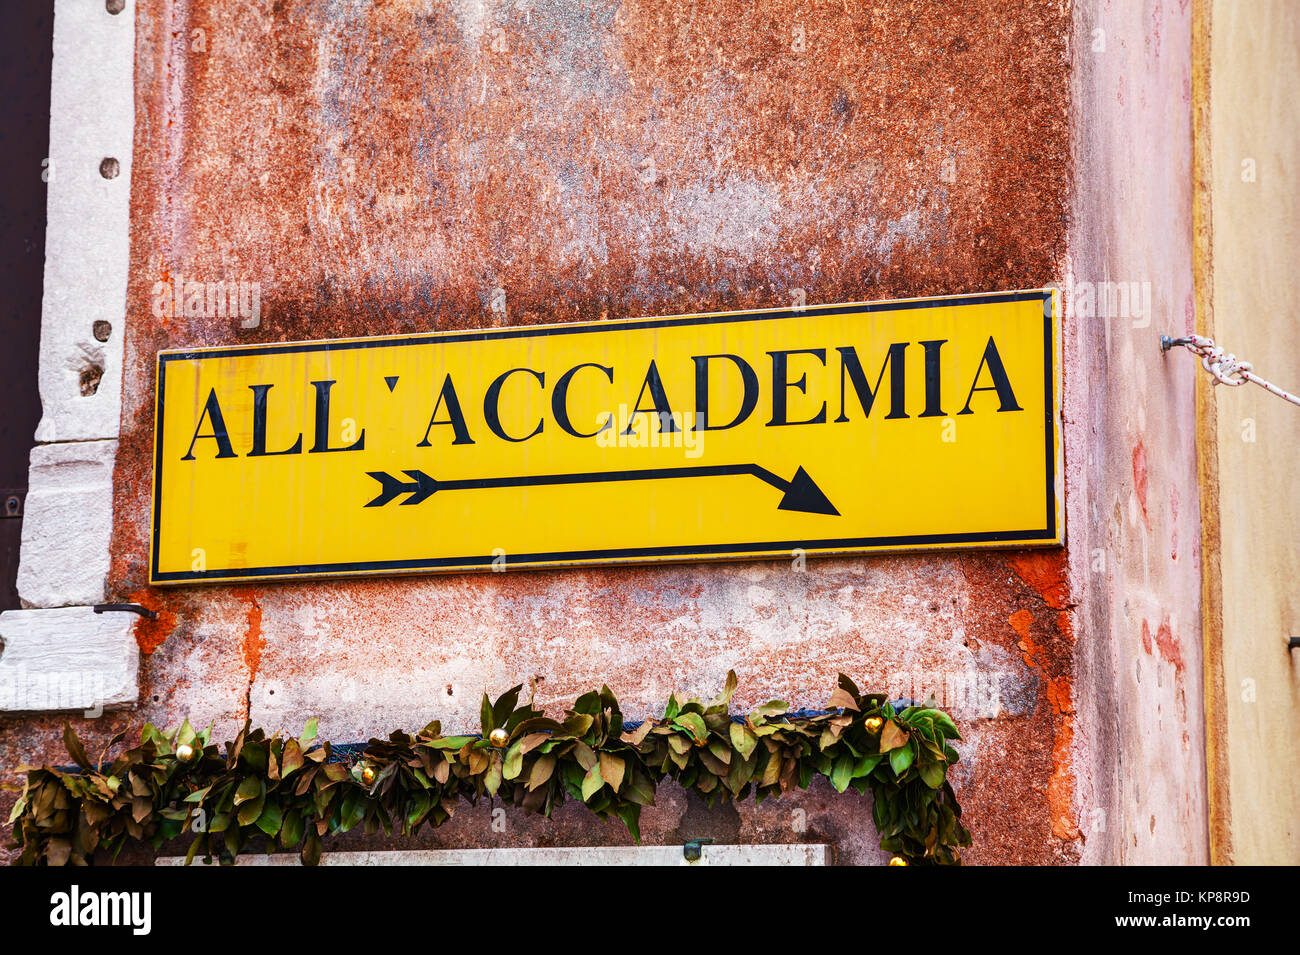 All Accademia direction sign in Venice Stock Photo